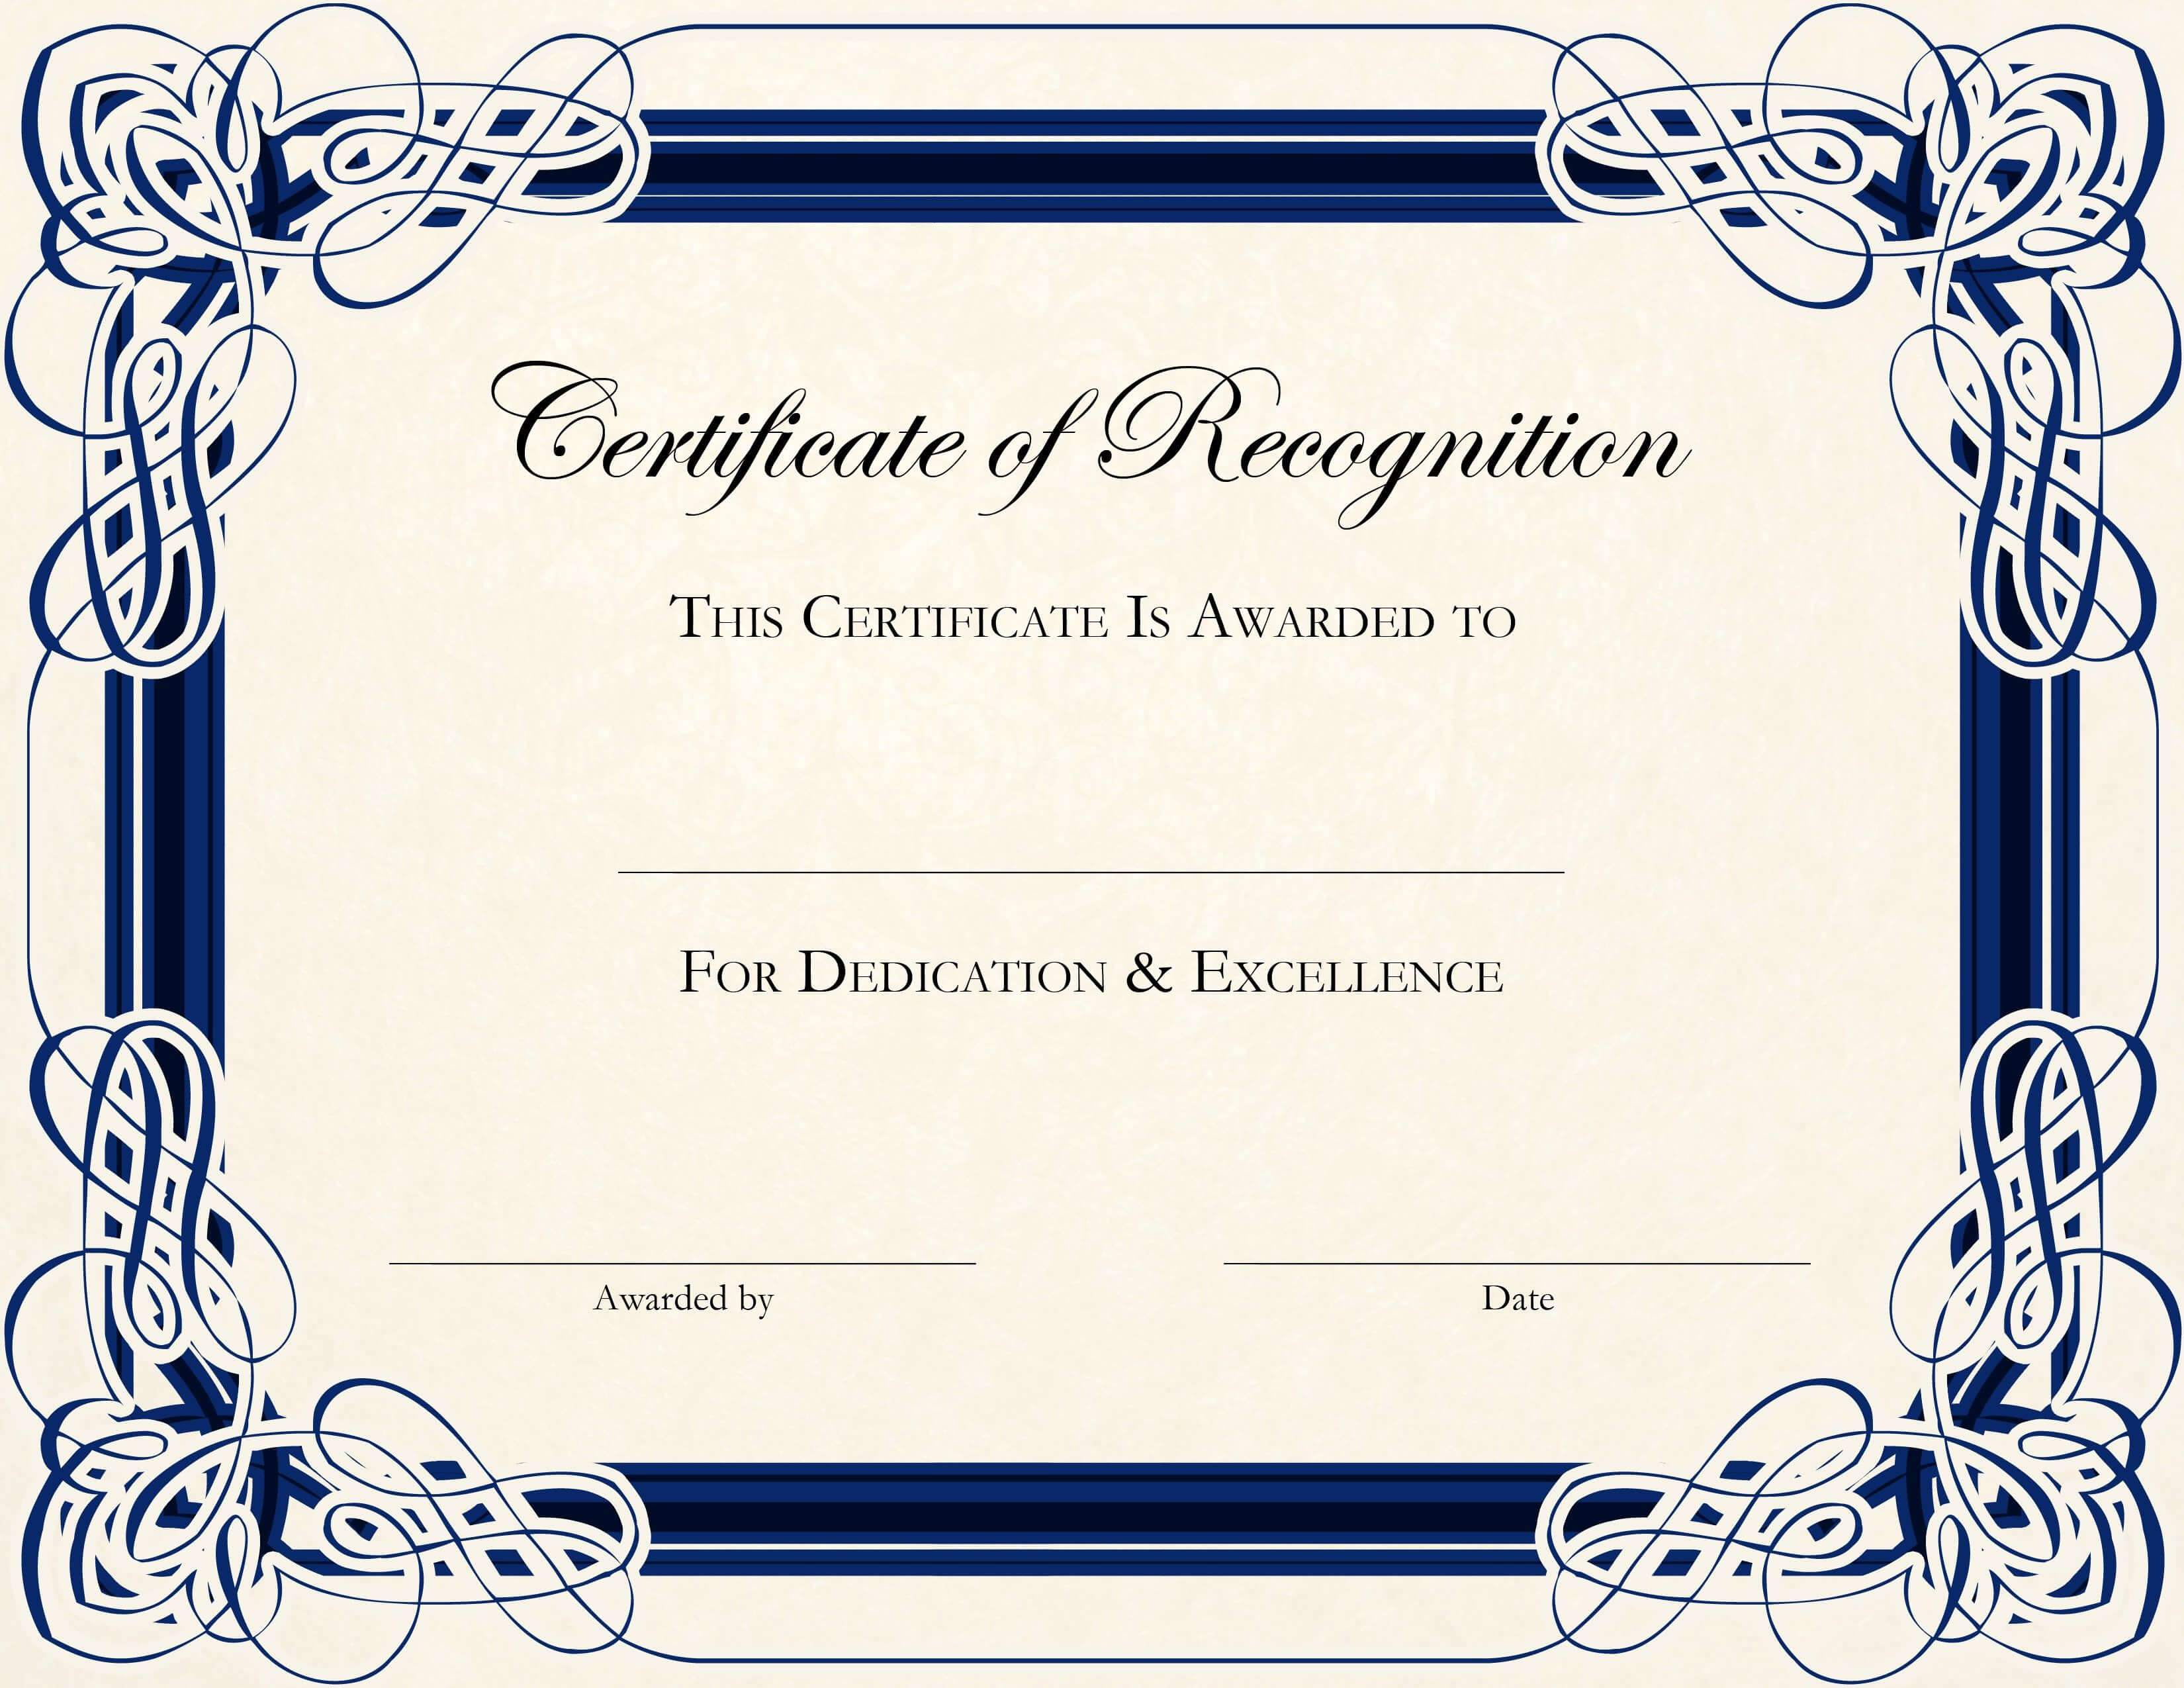 Free Printable Certificate Templates For Teachers throughout Certificate Of Completion Template Free Printable